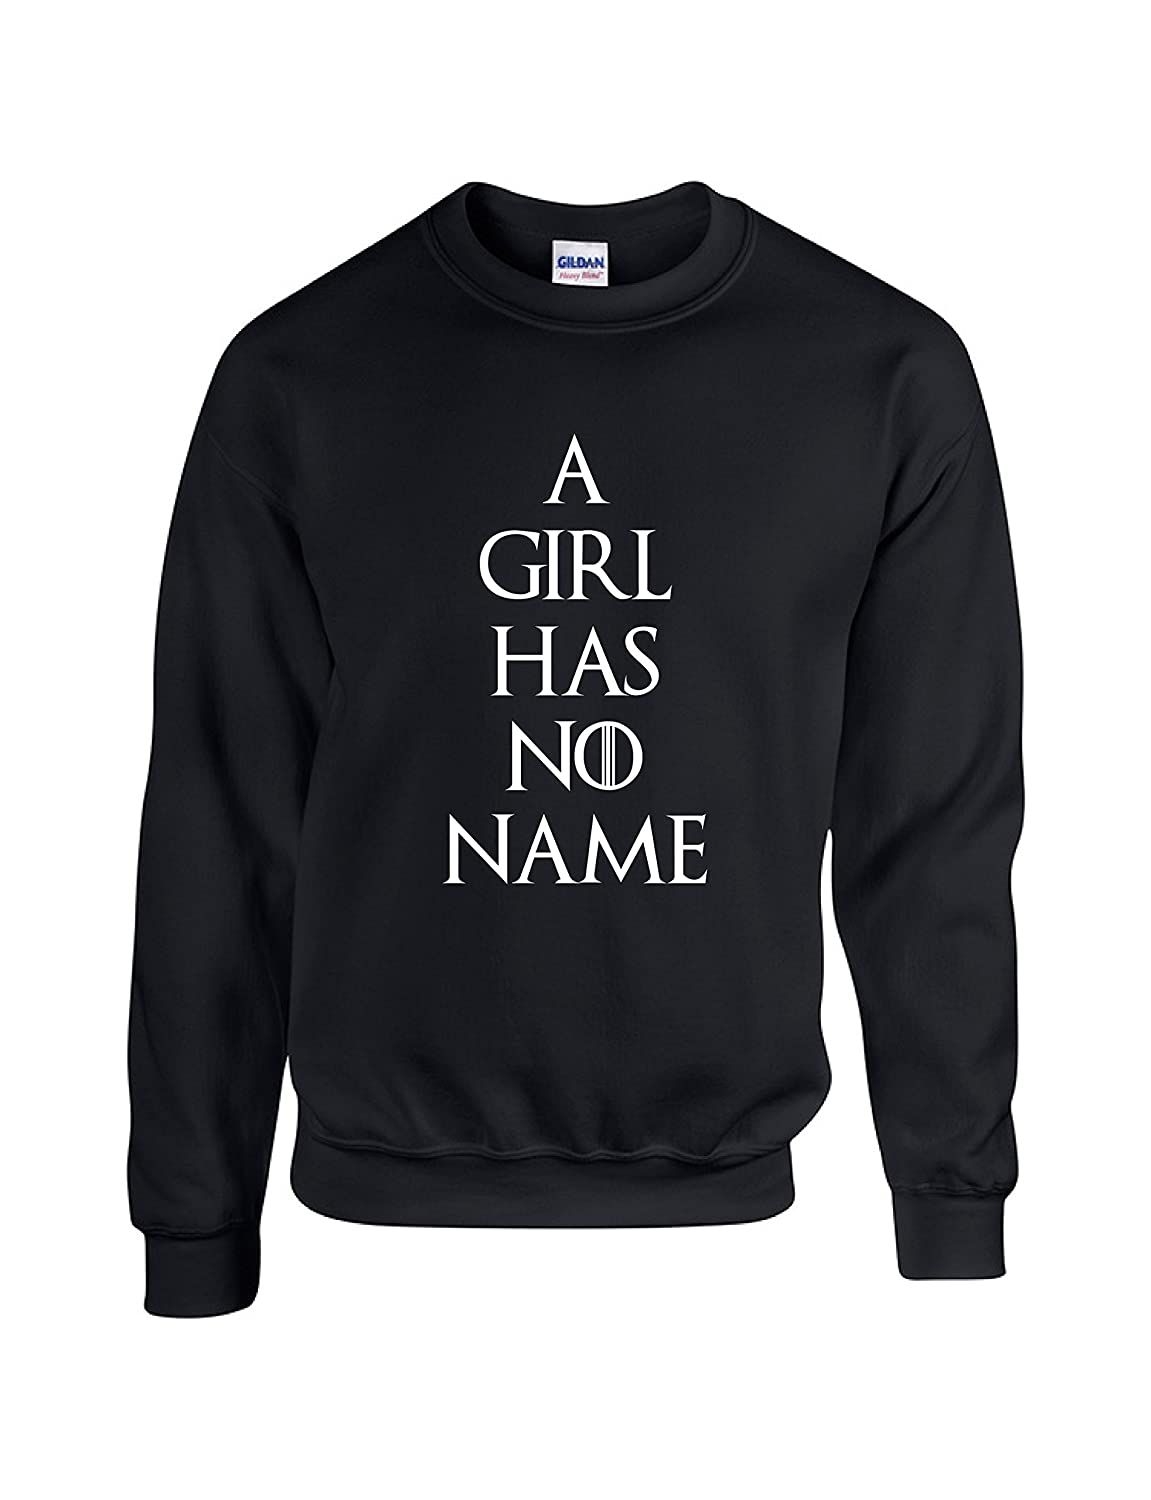 A Girl Has No Name Crewneck Sweater by Outlook Designs